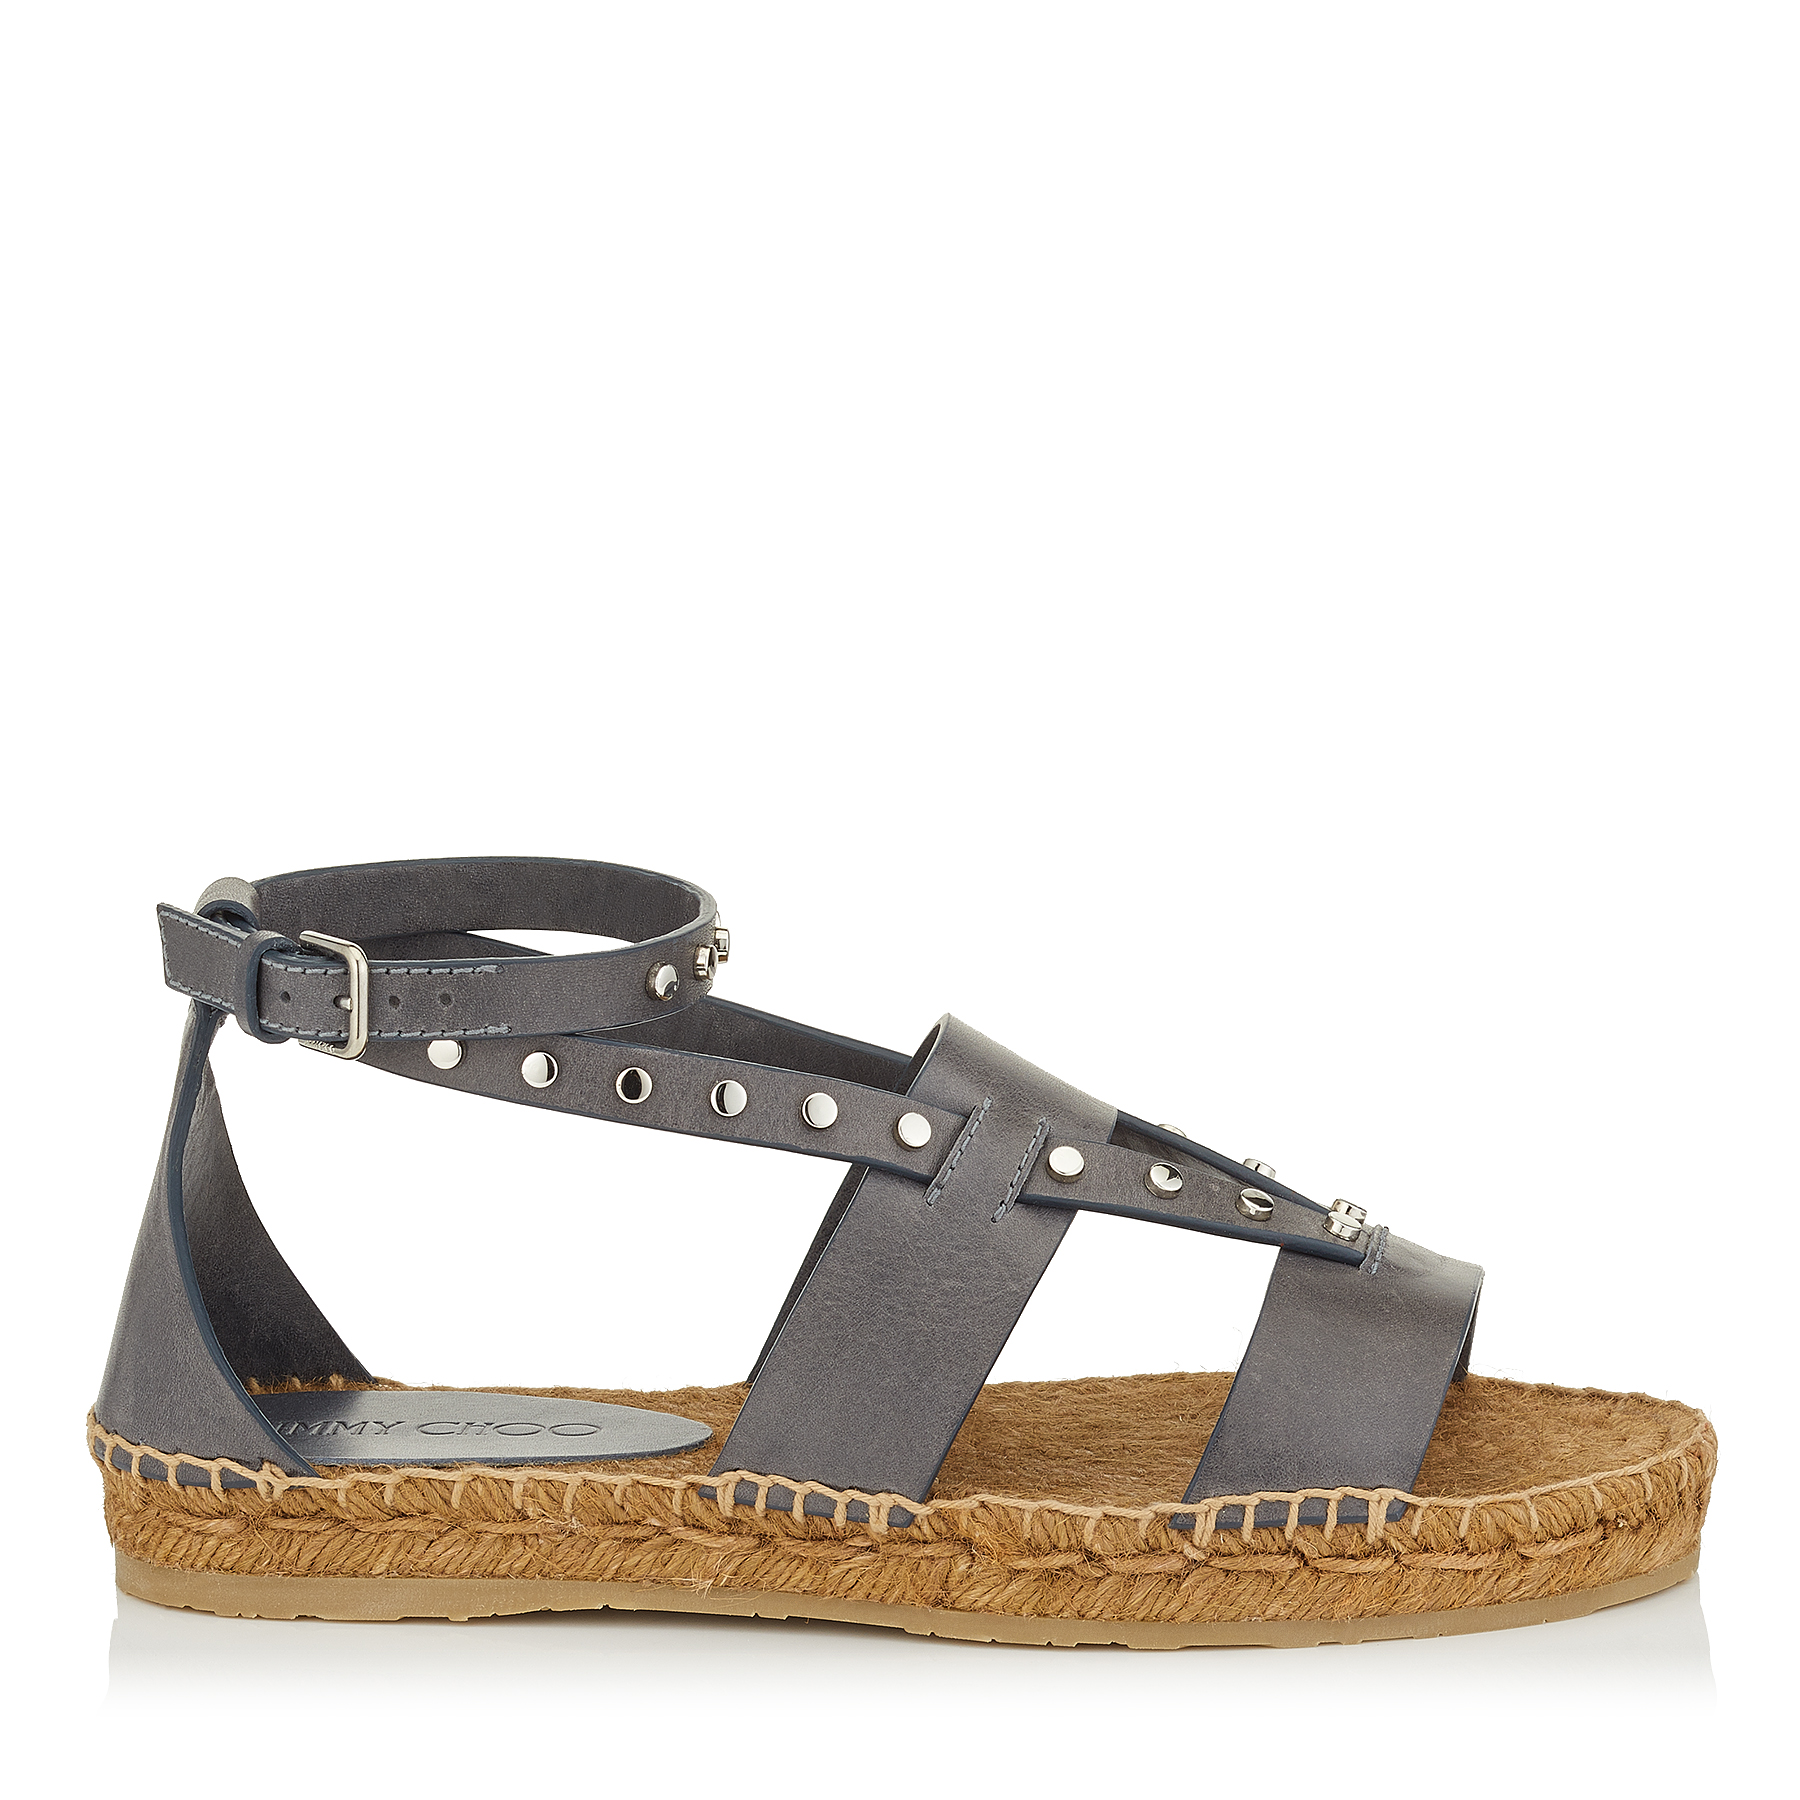 DENISE FLAT Grey Vachetta Leather Sandals with Studs by Jimmy Choo